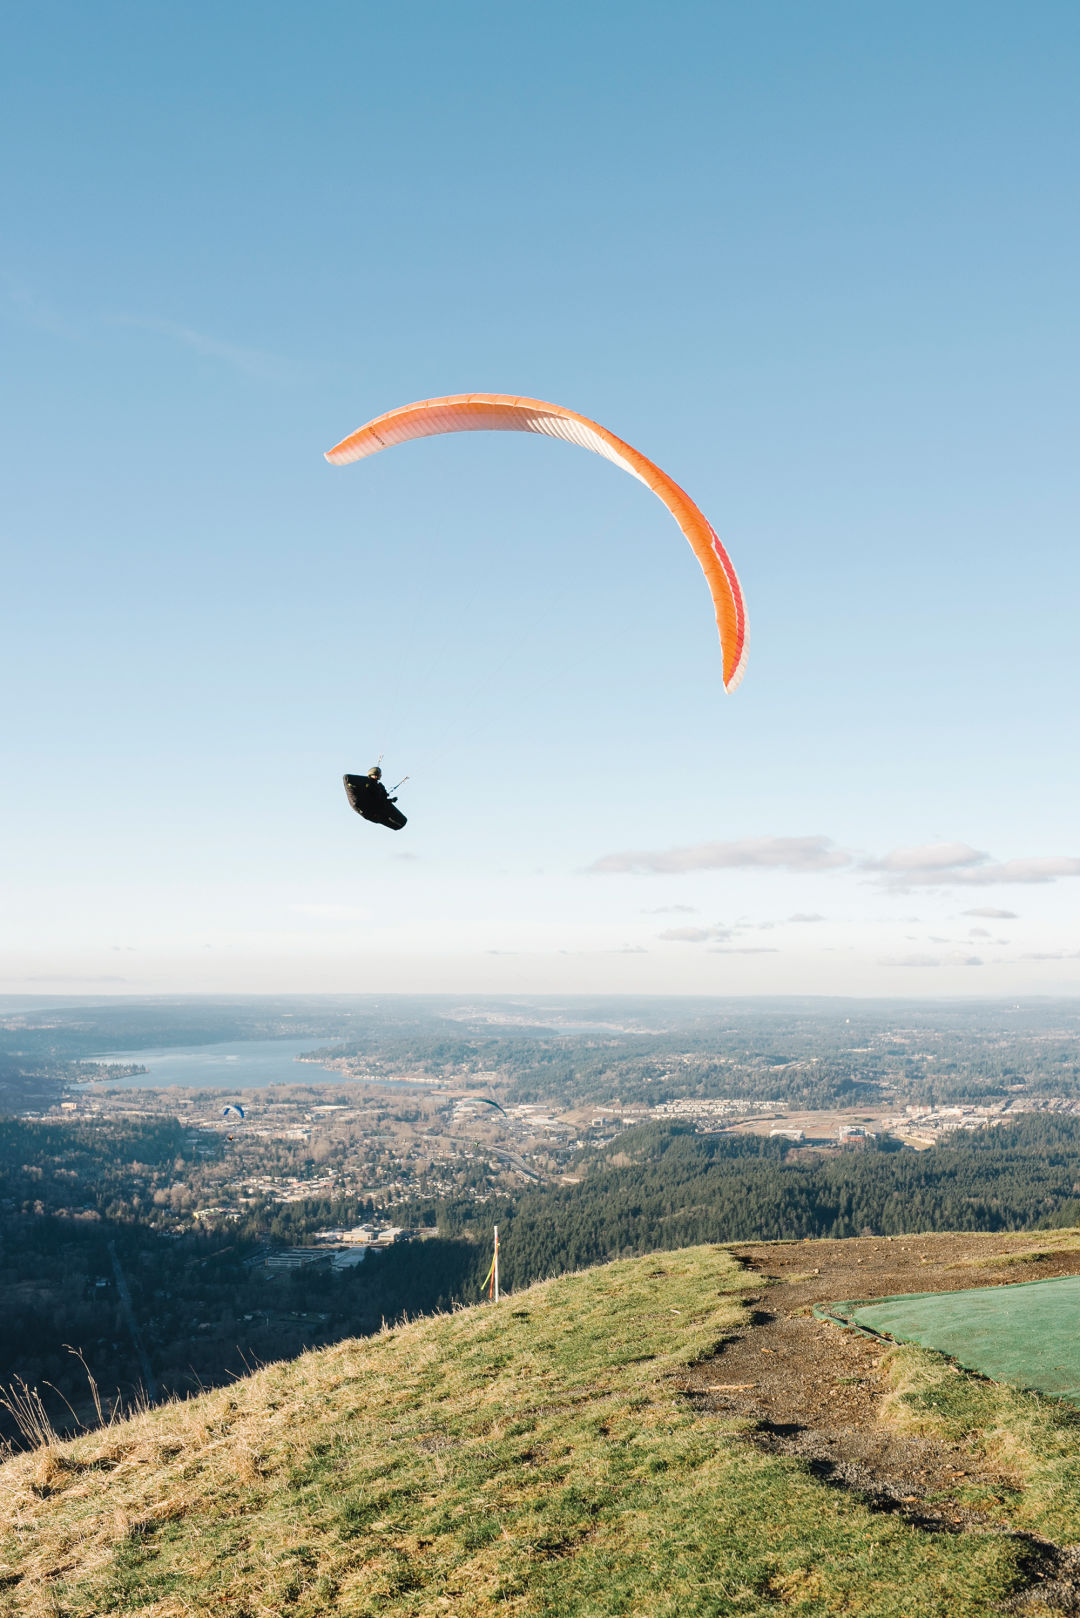 So You Want to Try Paragliding | Seattle Met